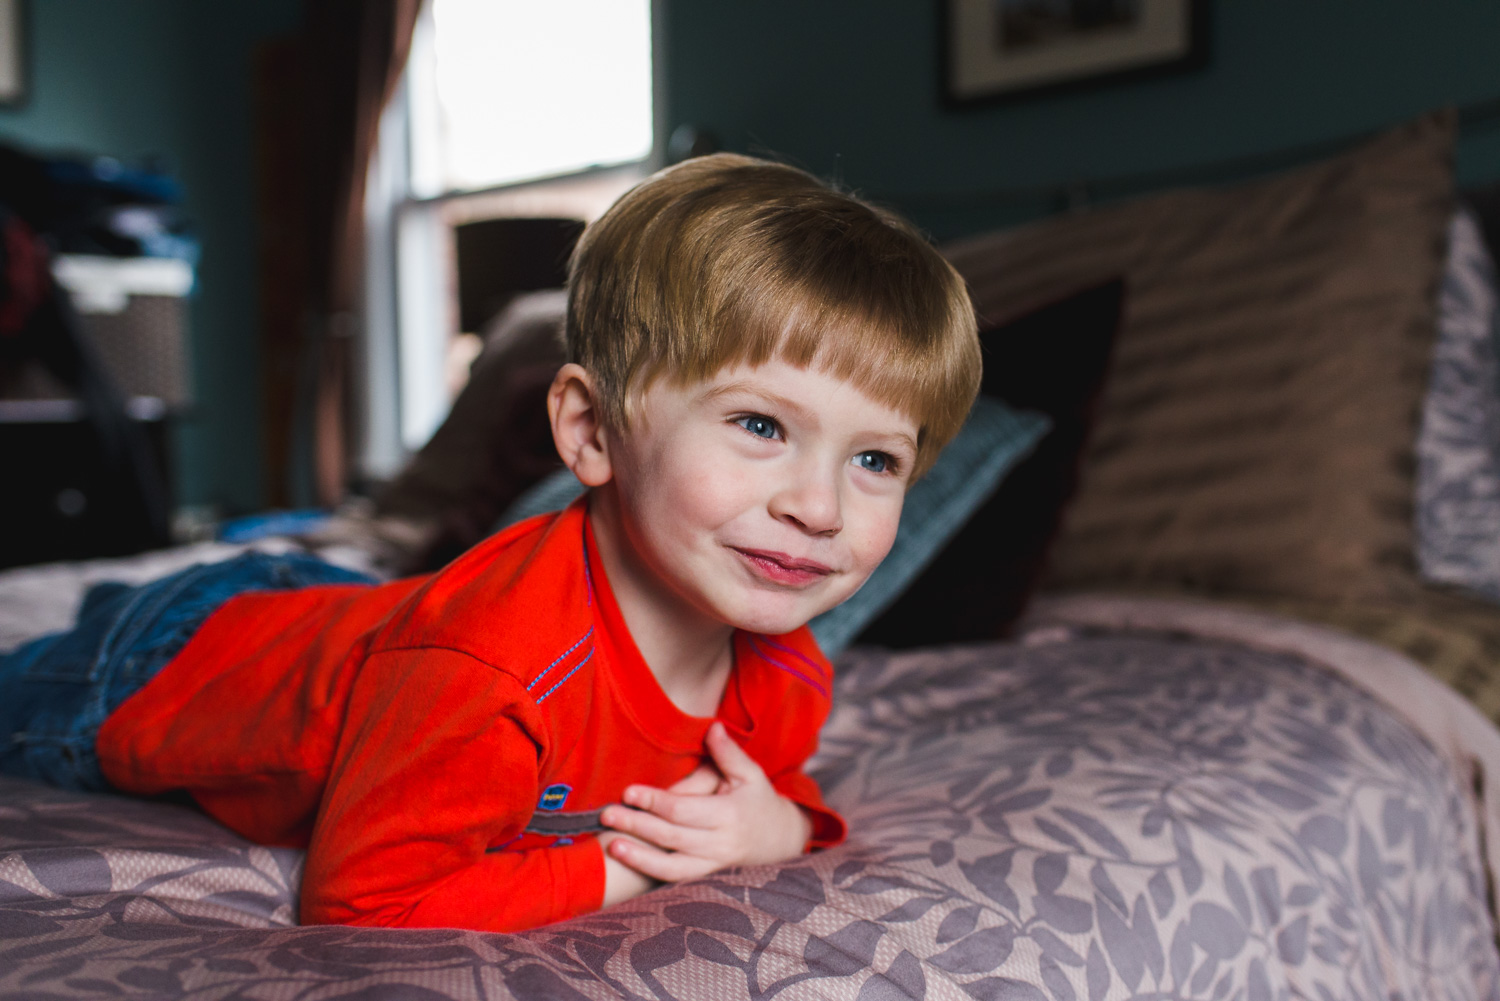 A little boy lying on his parents' bed.